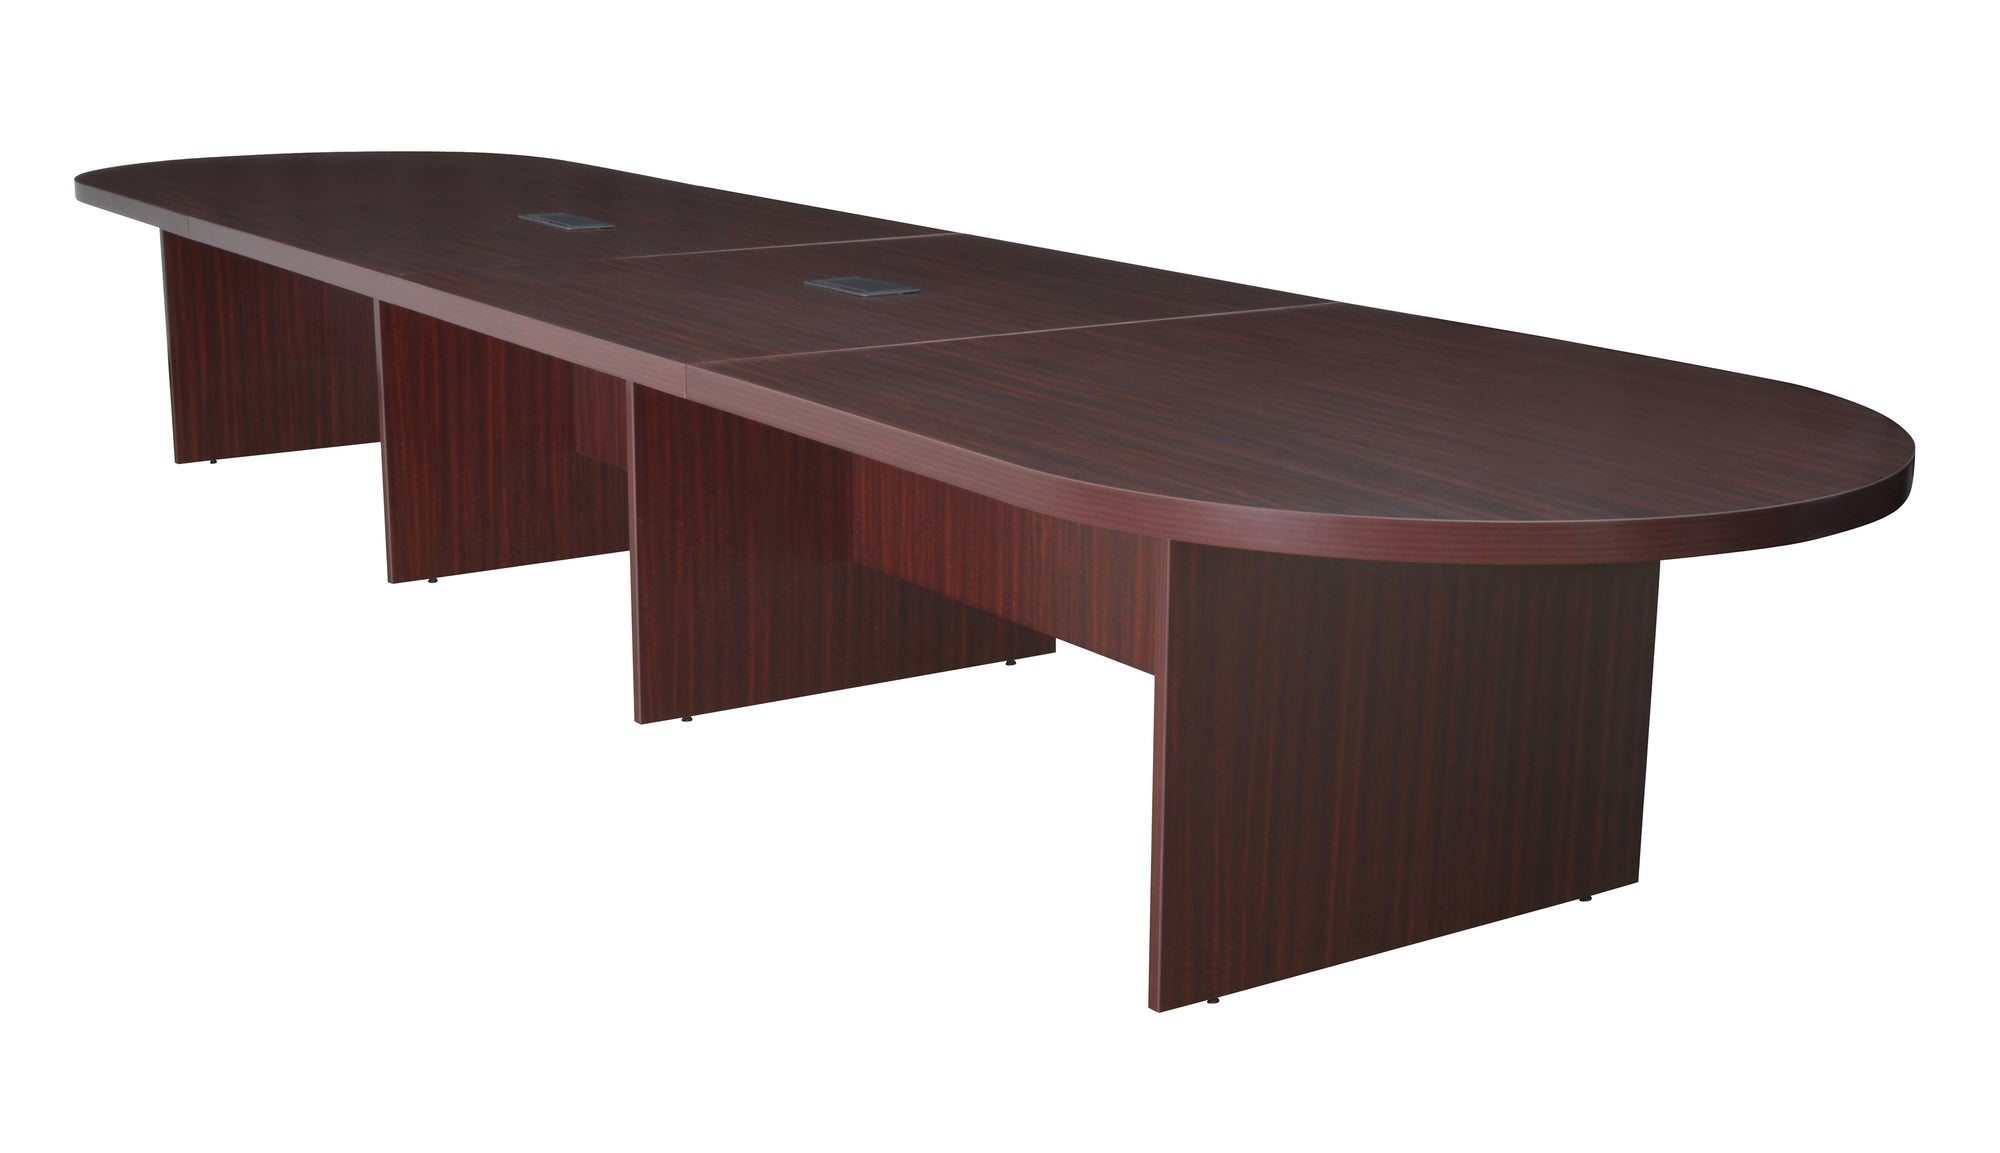 Mahogany Modular Conference Table With Power Data Grommets - 12 foot conference table with data ports